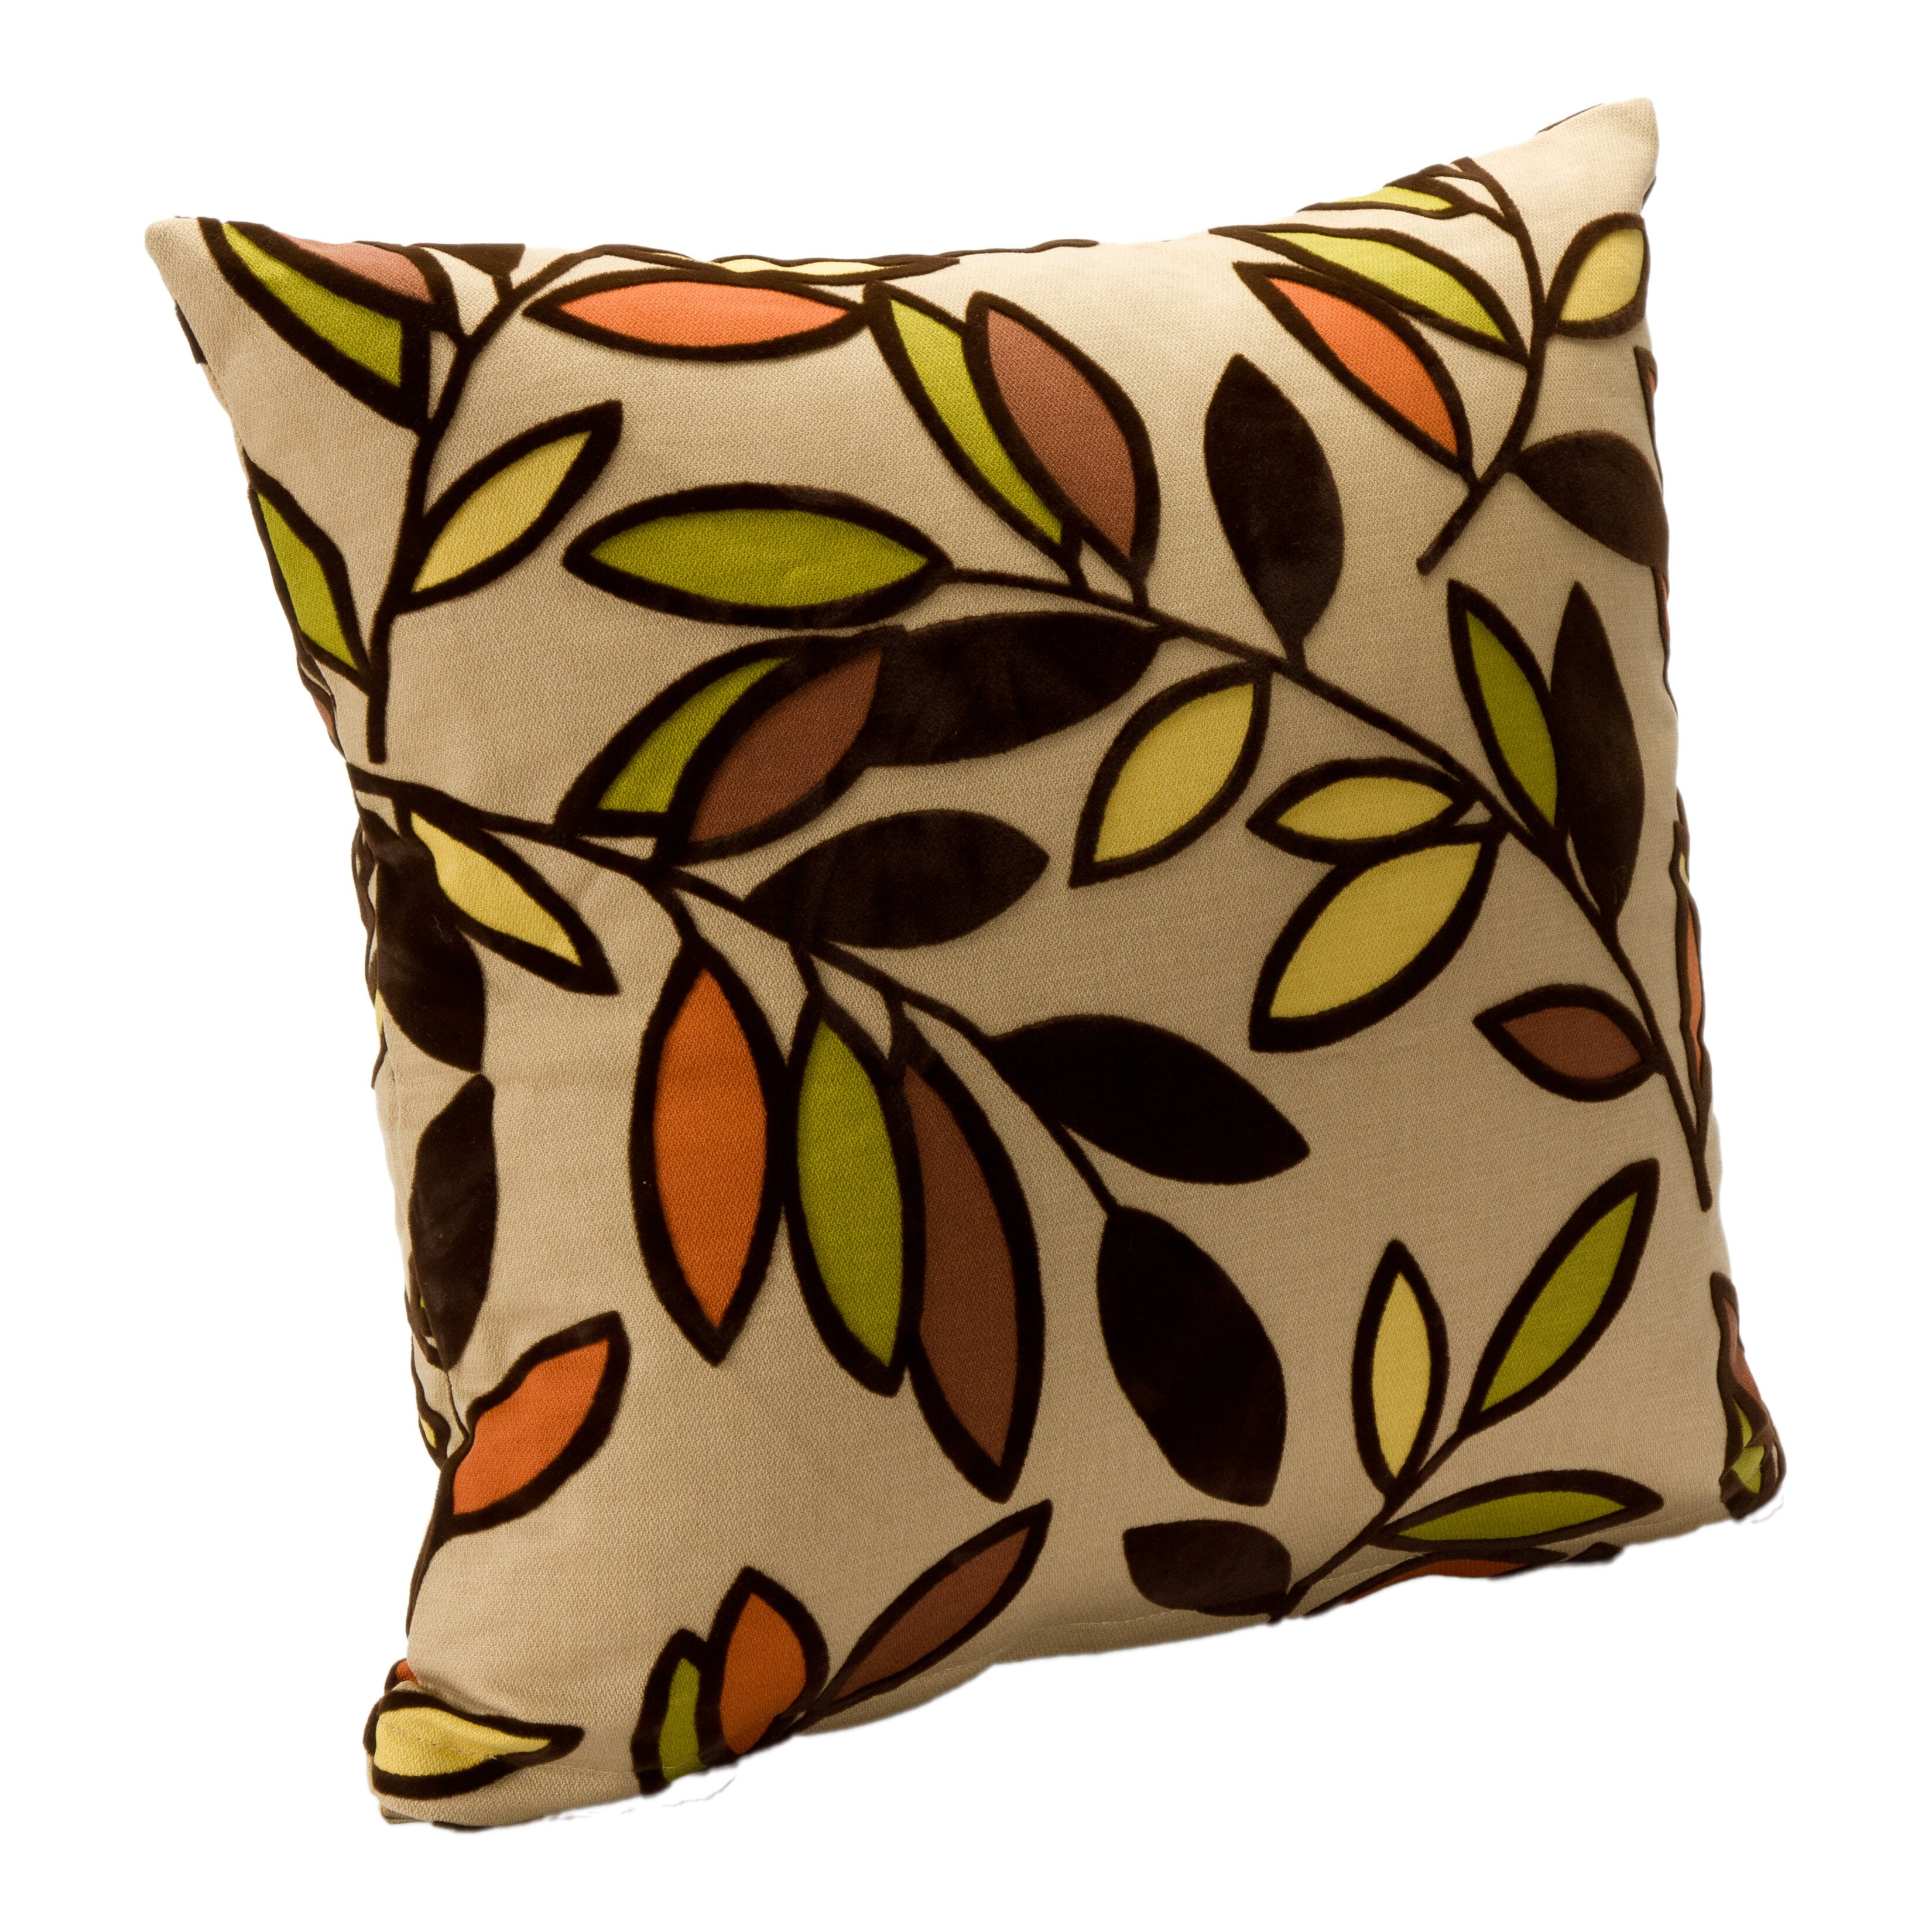 Siscovers Kirby Throw Pillow & Reviews | Wayfair